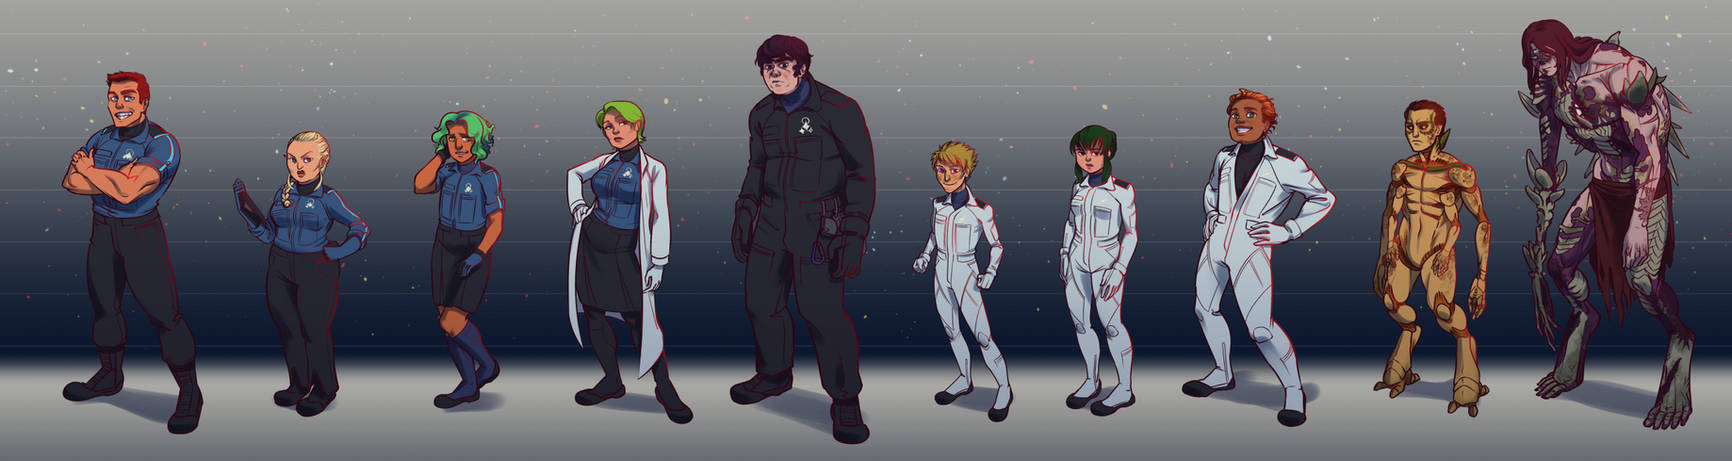 Space Crew Lineup by MisterCrowbar